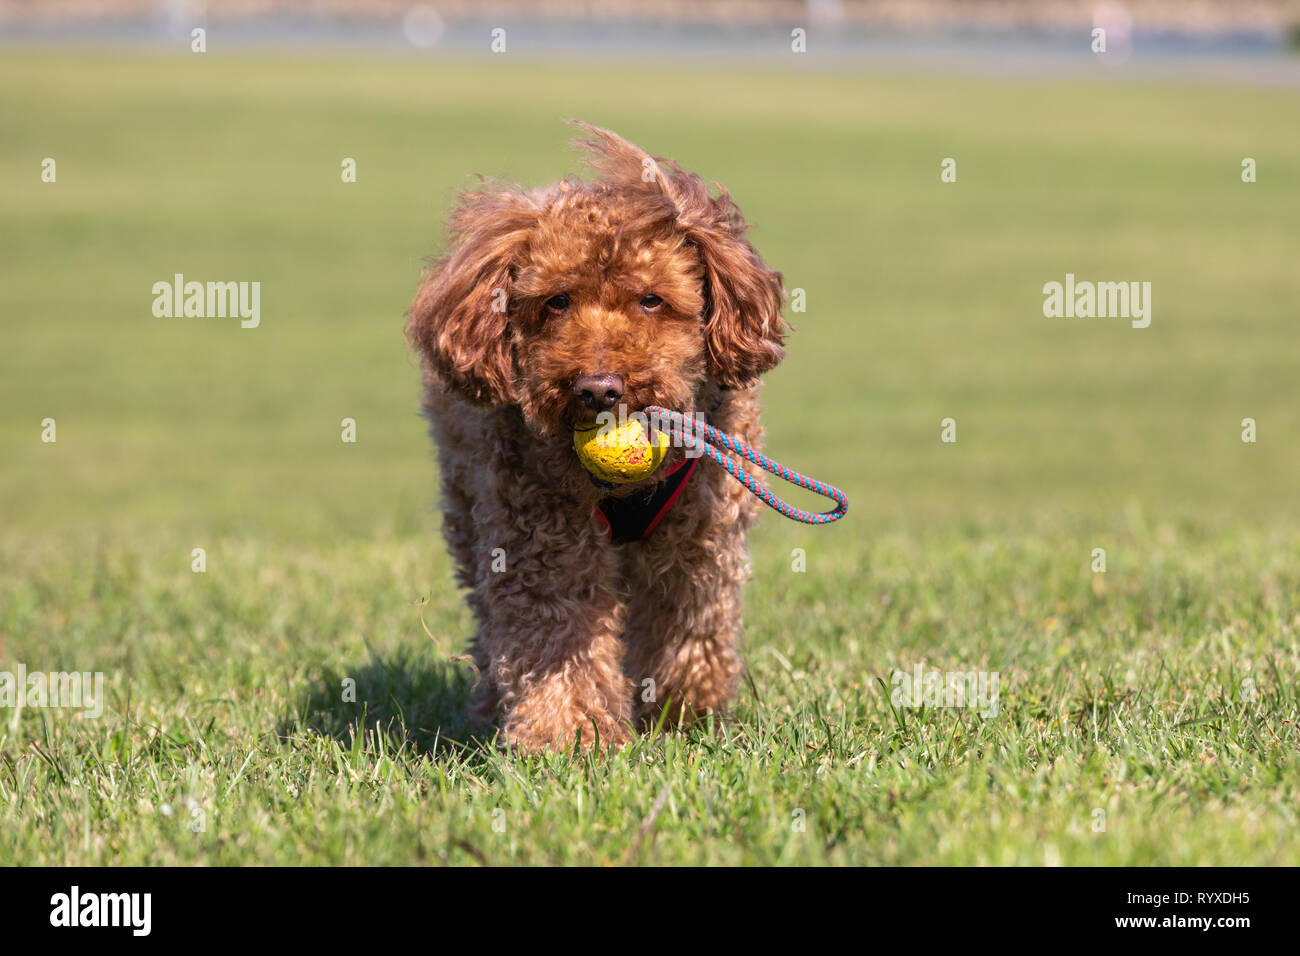 Brown poodle playing fetch on a grass lawn bringing the ball back. - Stock Image